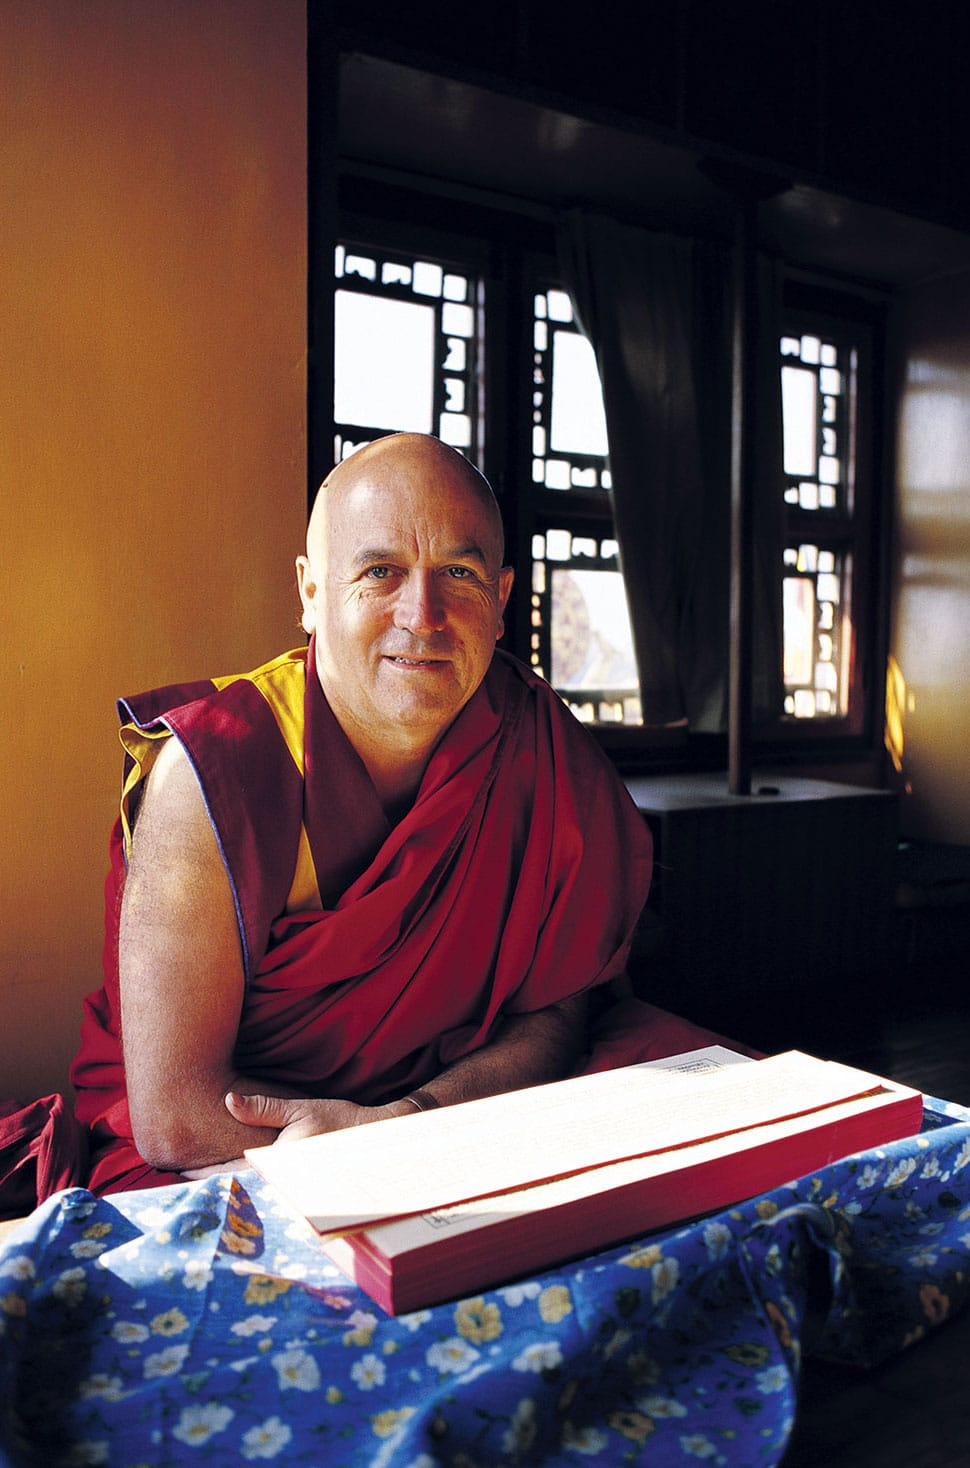 Matthieu Ricard. Photo by Jill Goucher.